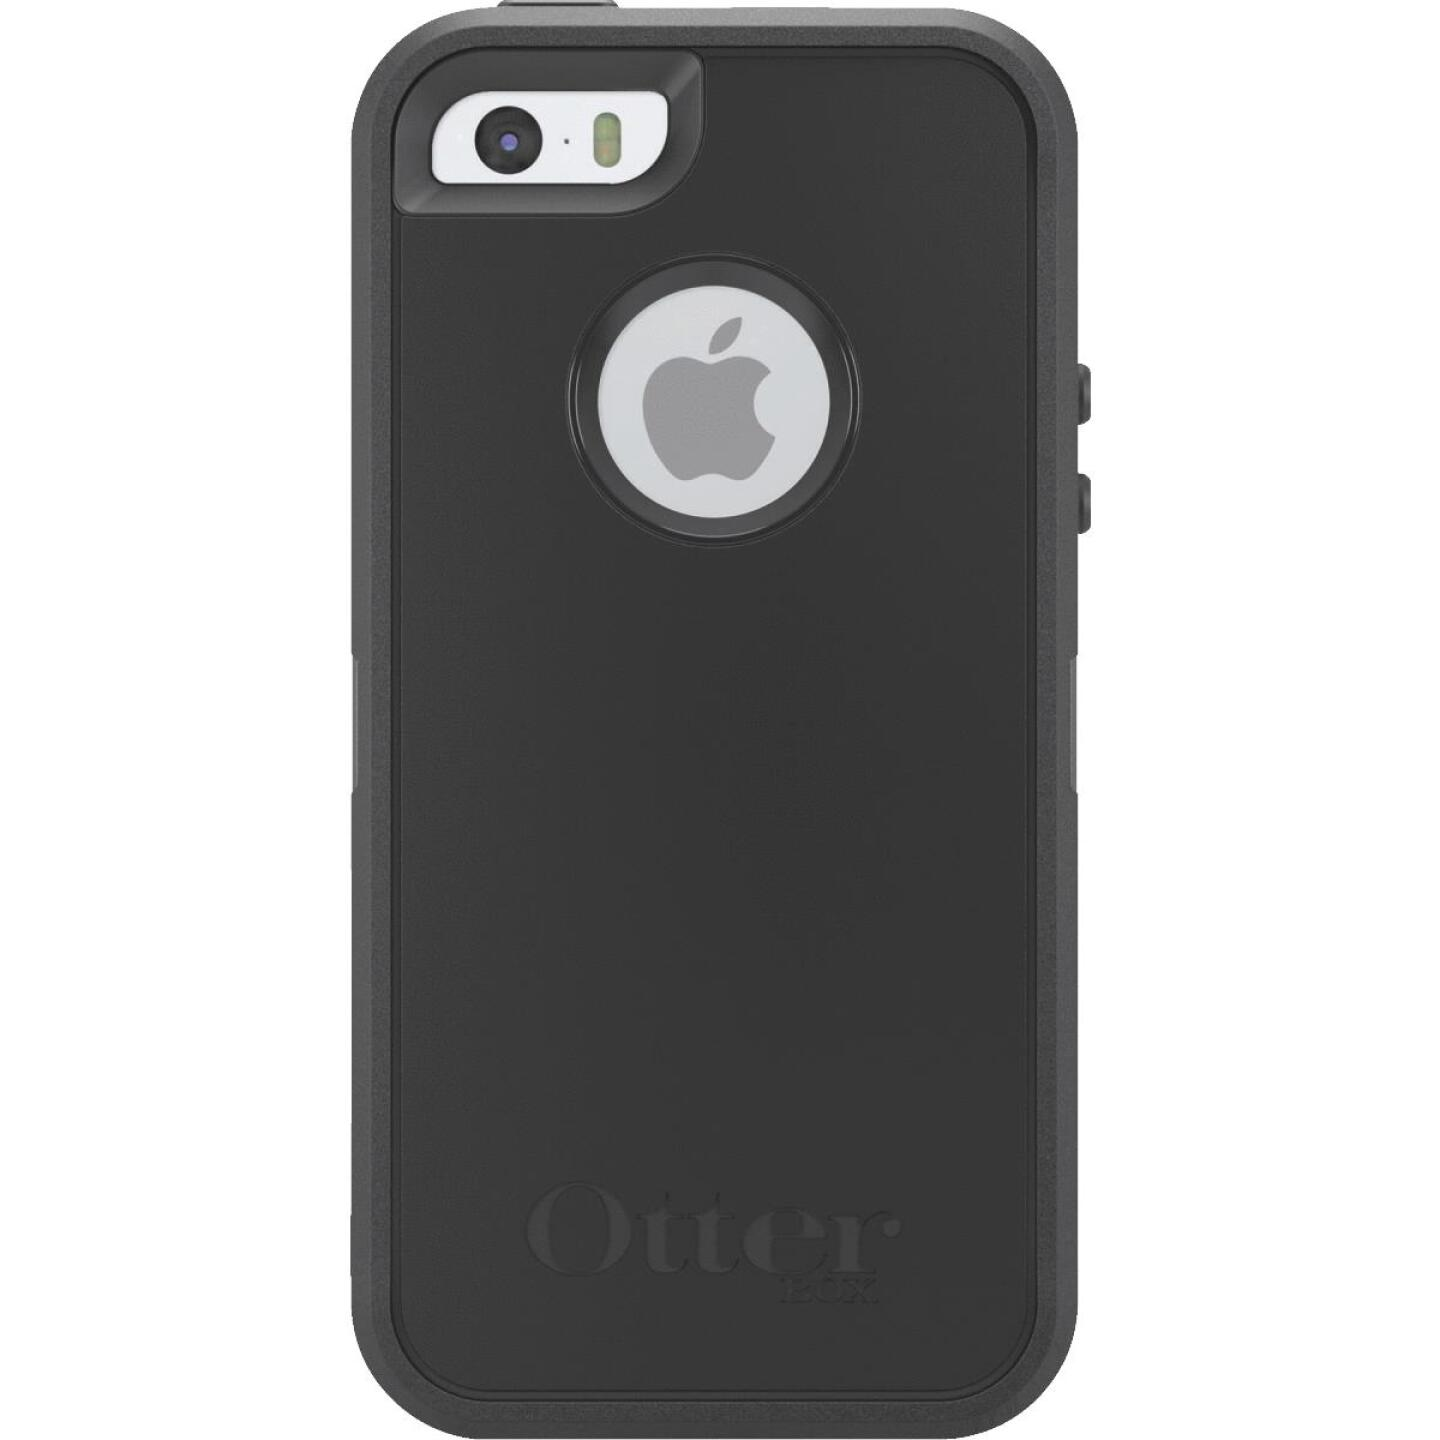 iPhone 5/5S Black OtterBox Cell Phone Case Image 2